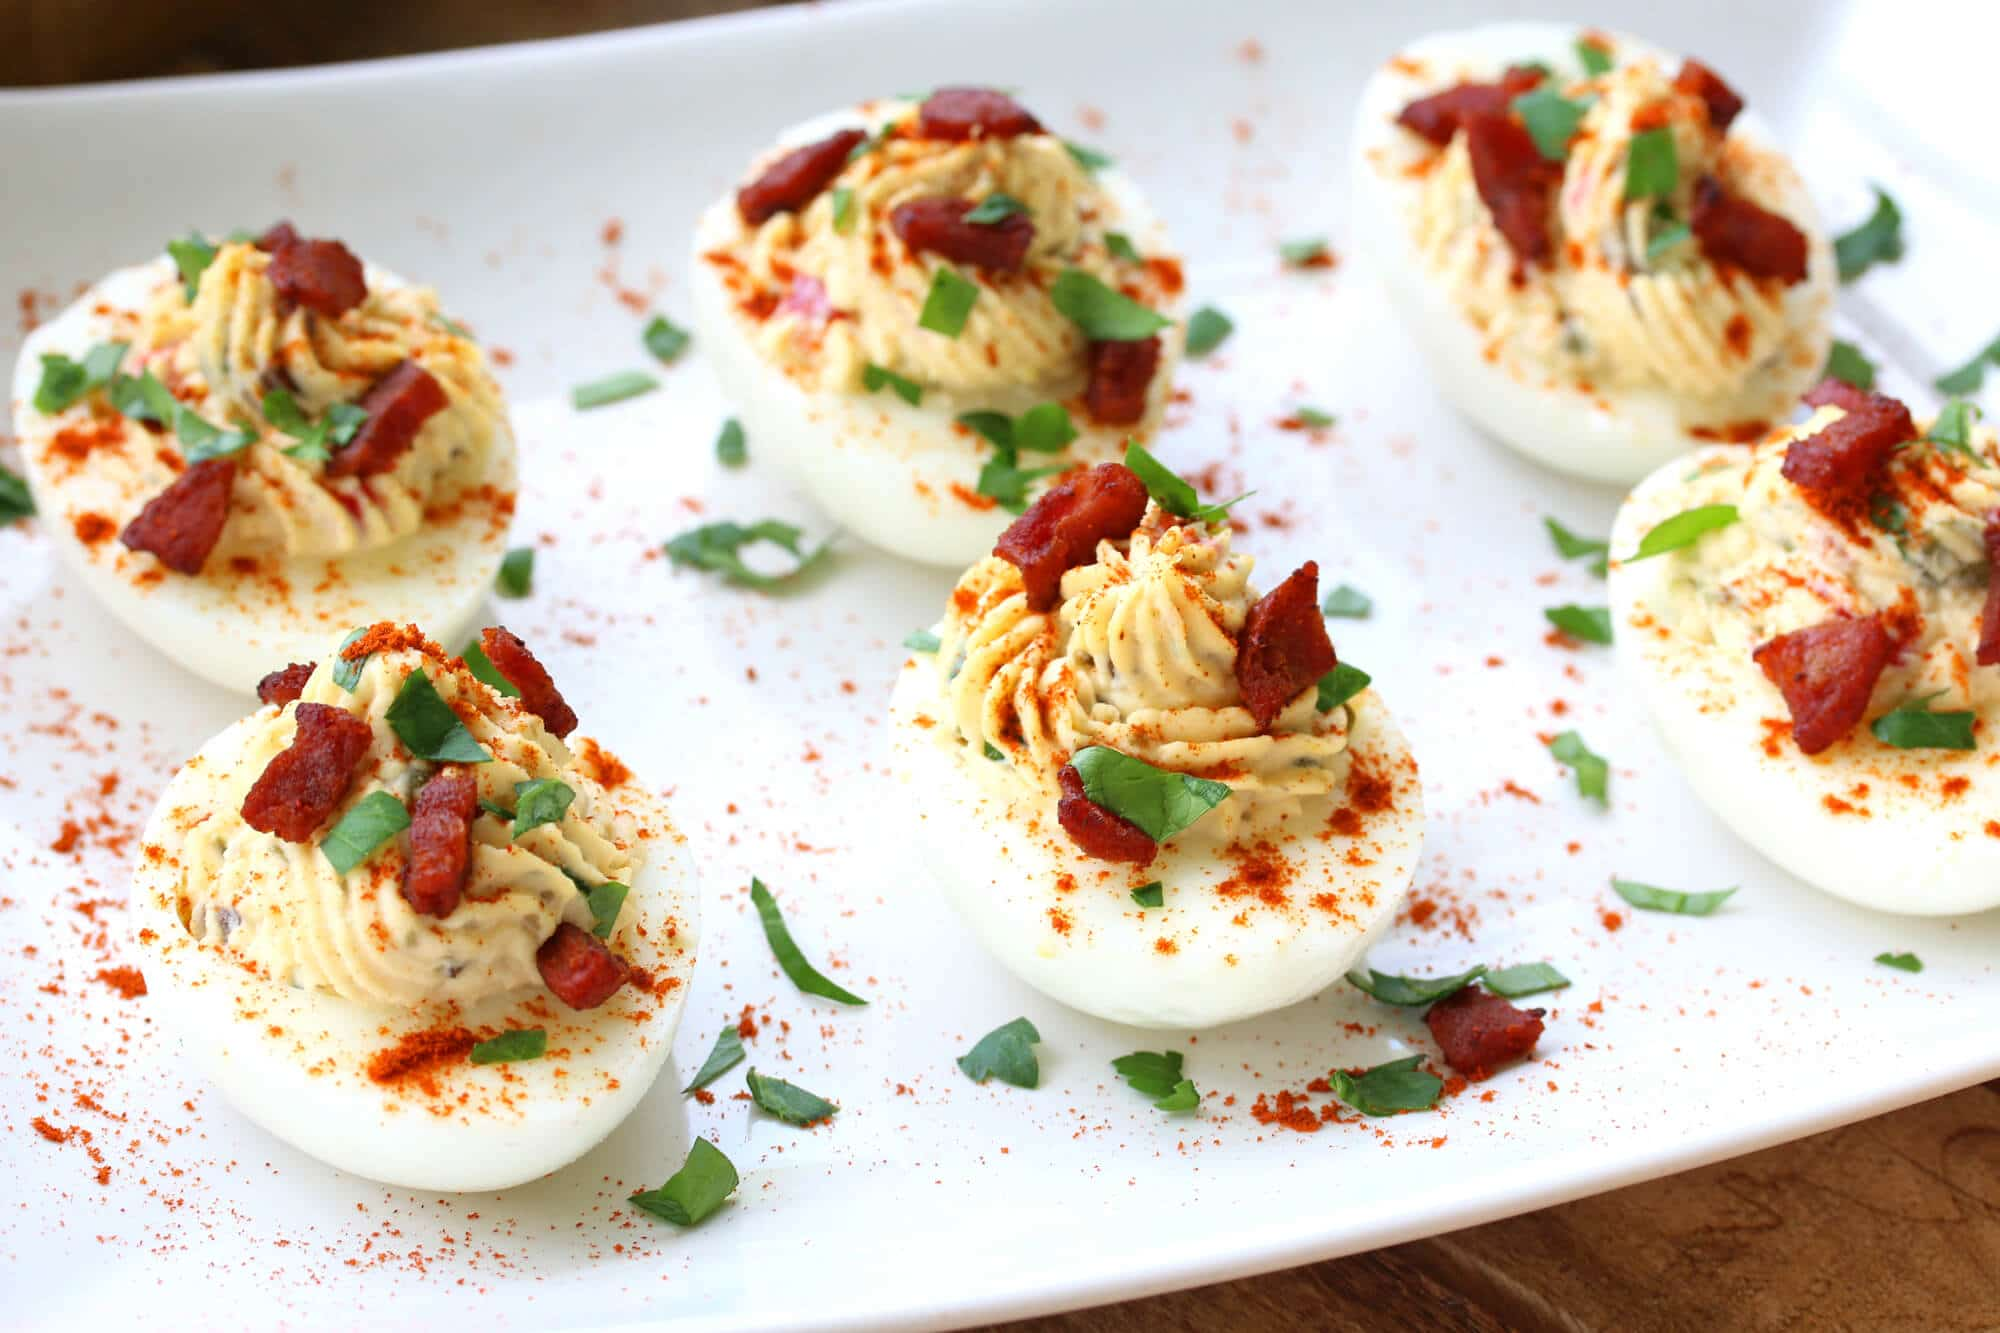 deviled eggs recipe spanish chorizo olives capers pimientos paprika best gluten free paleo